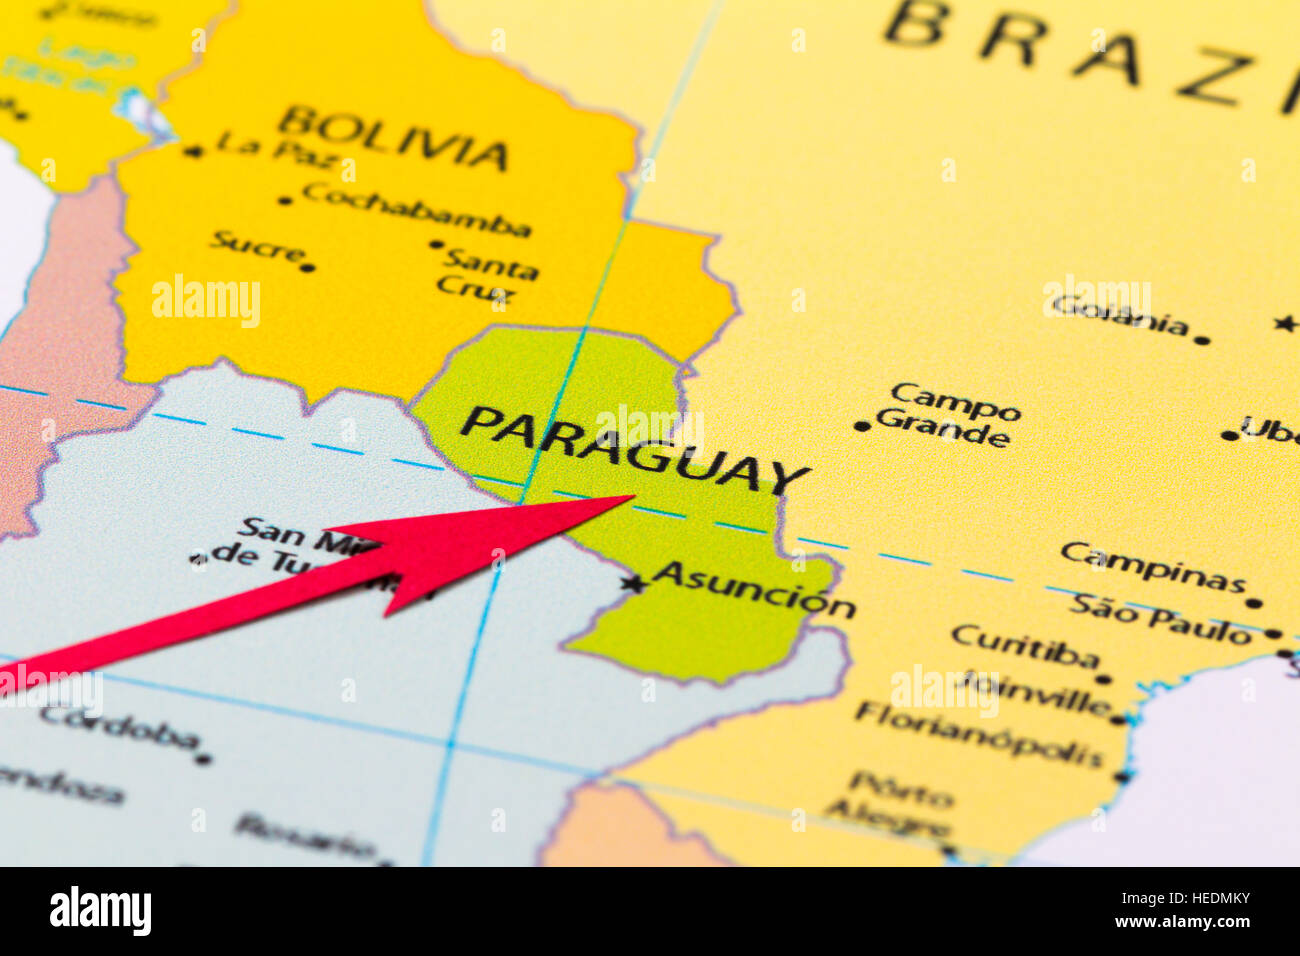 Red arrow pointing Paraguay on the map of south America continent